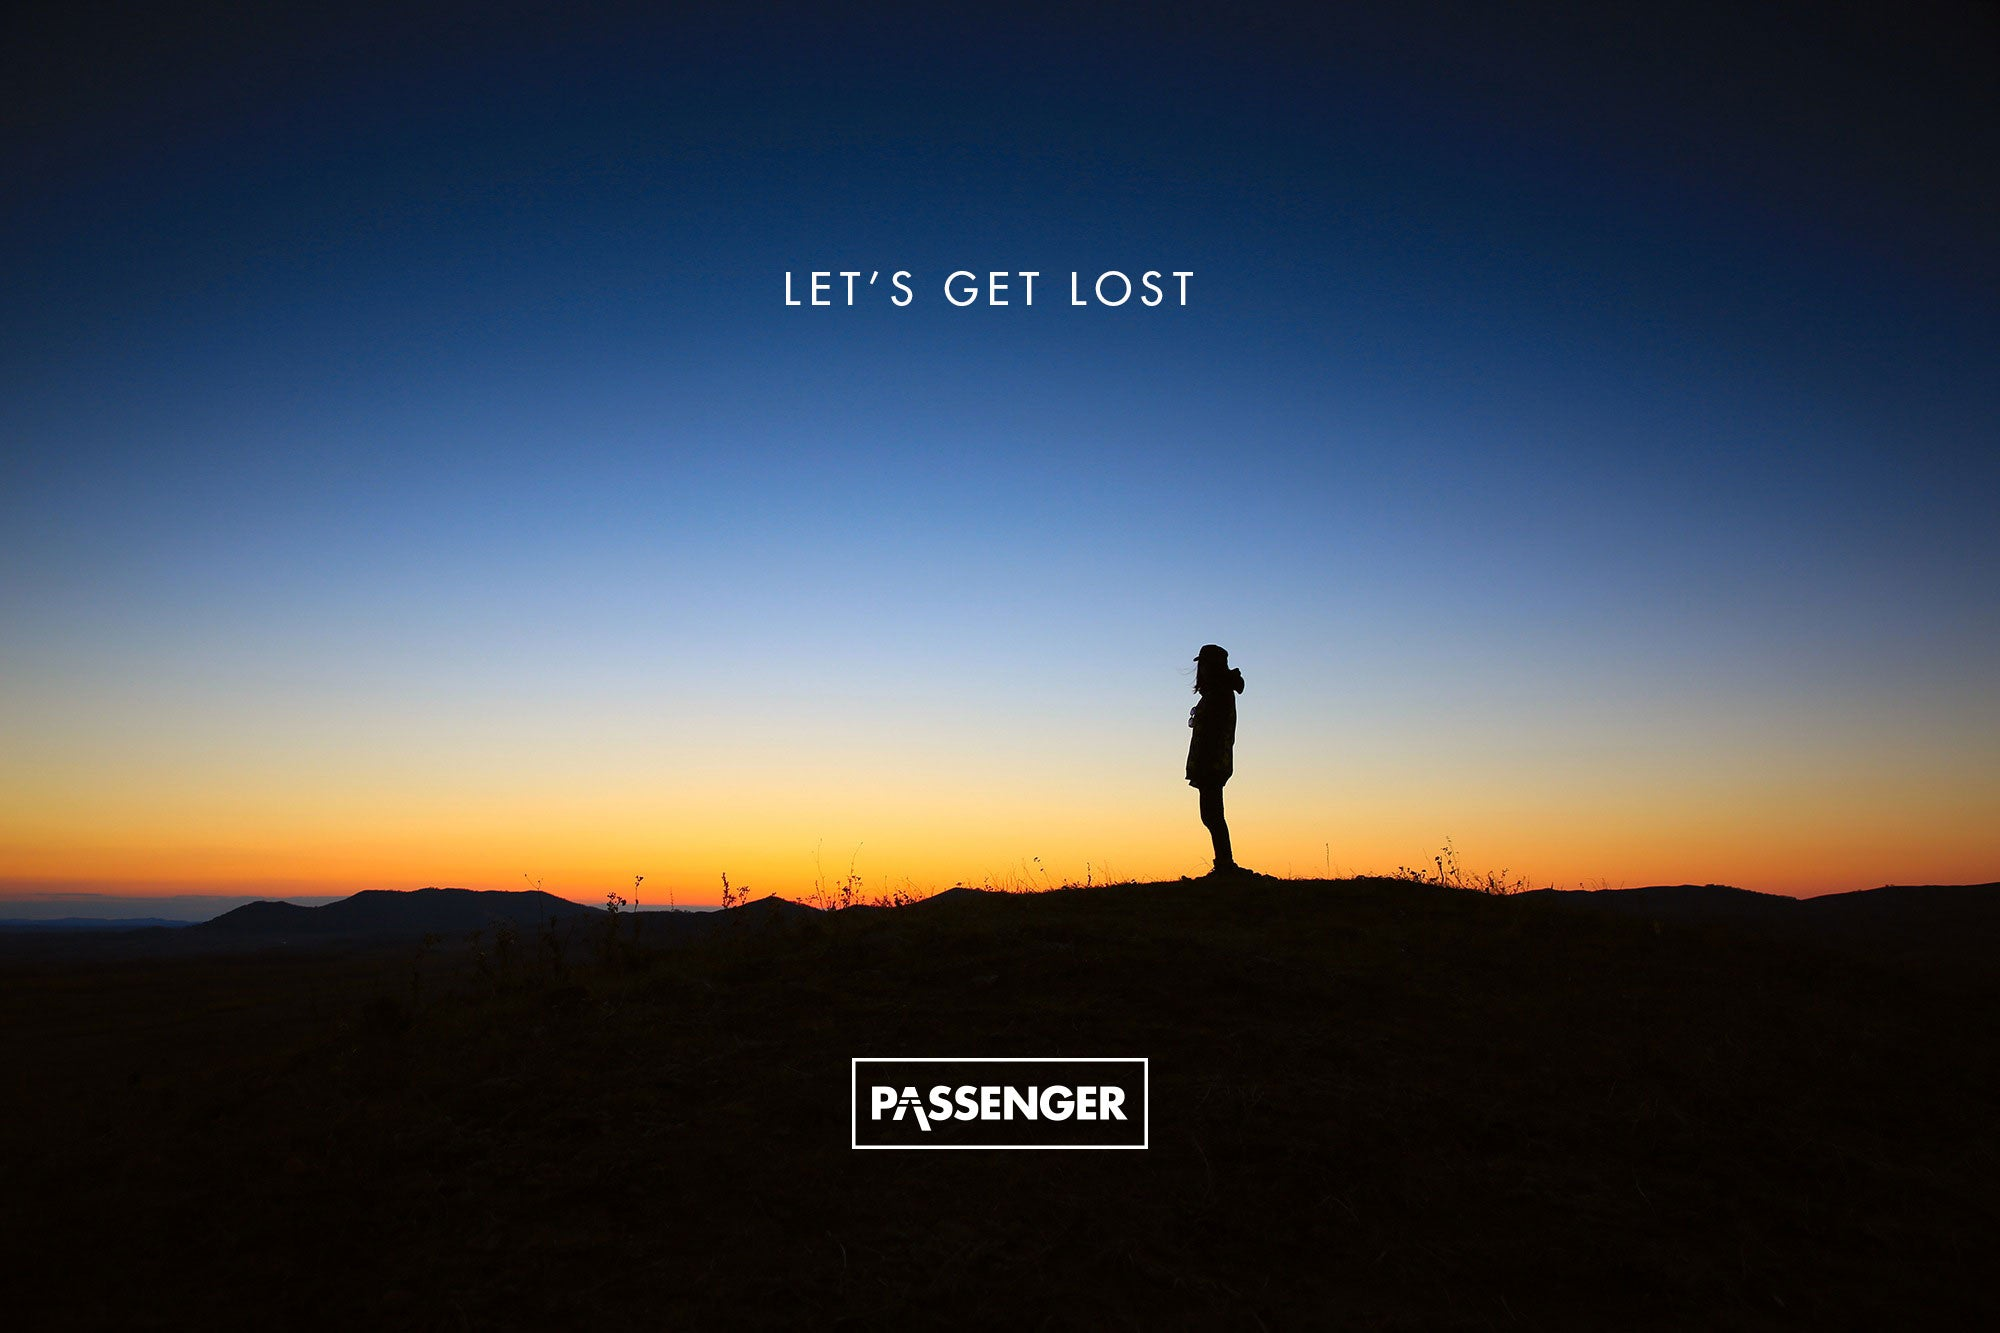 Passenger - Loose yourself.